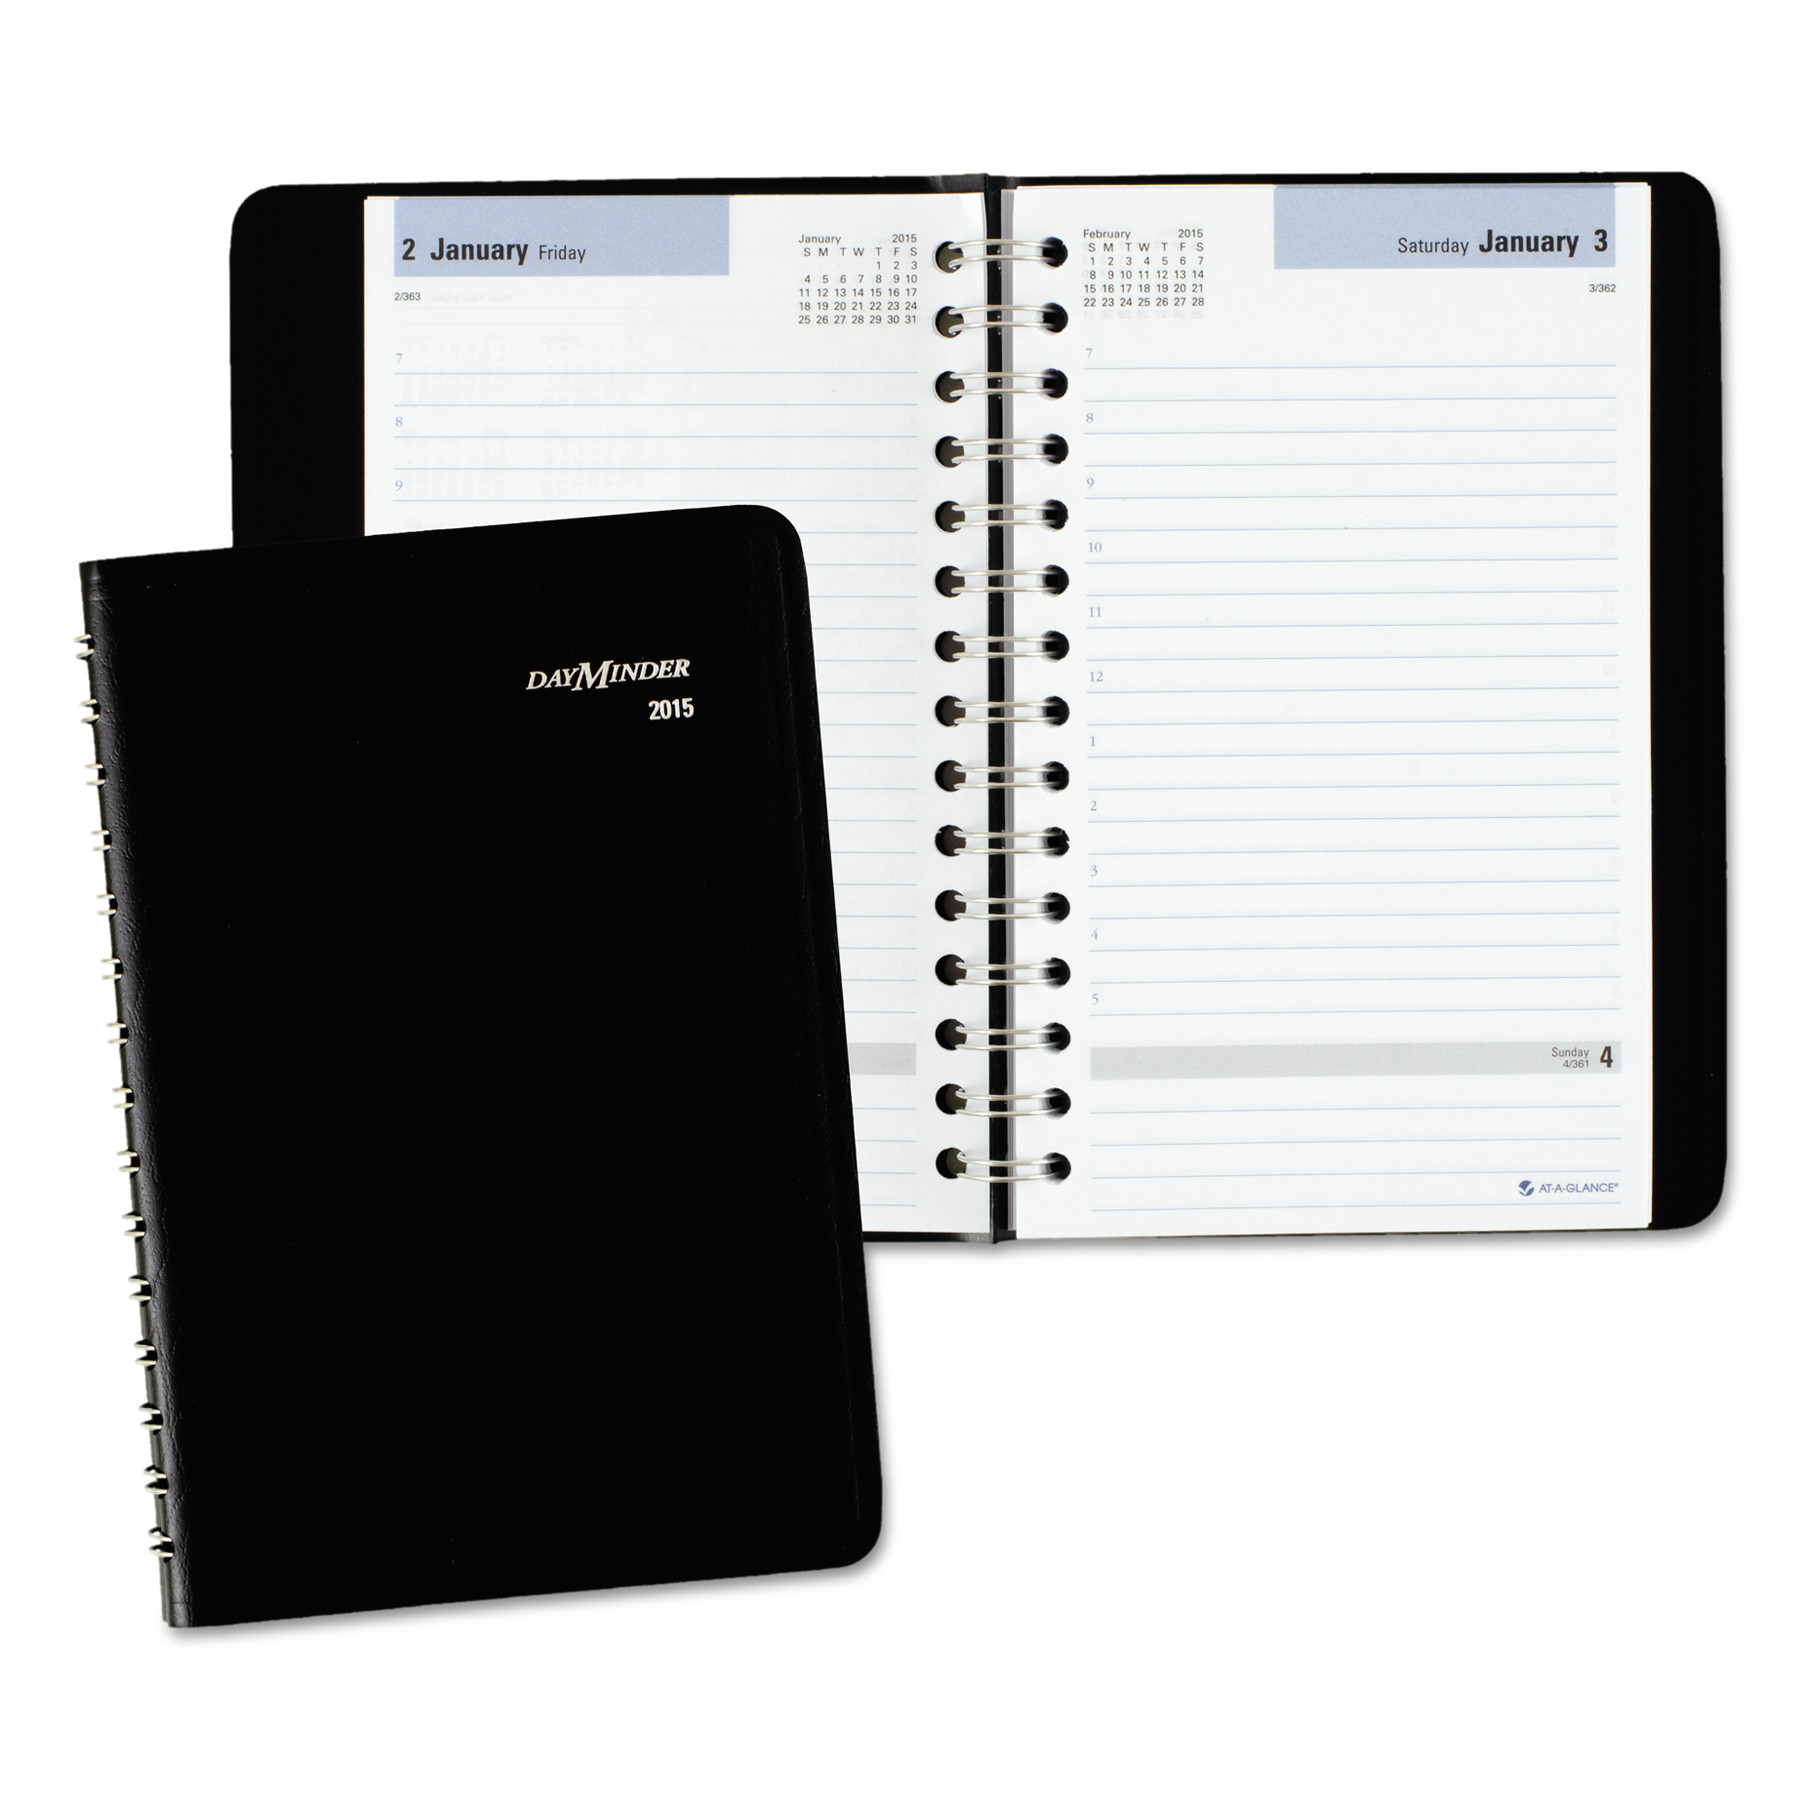 AT-A-GLANCE DayMinder Daily Appointment Book with Hourly Appointments, 8 x 4 7 8, Black, 2018 by AT-A-GLANCE